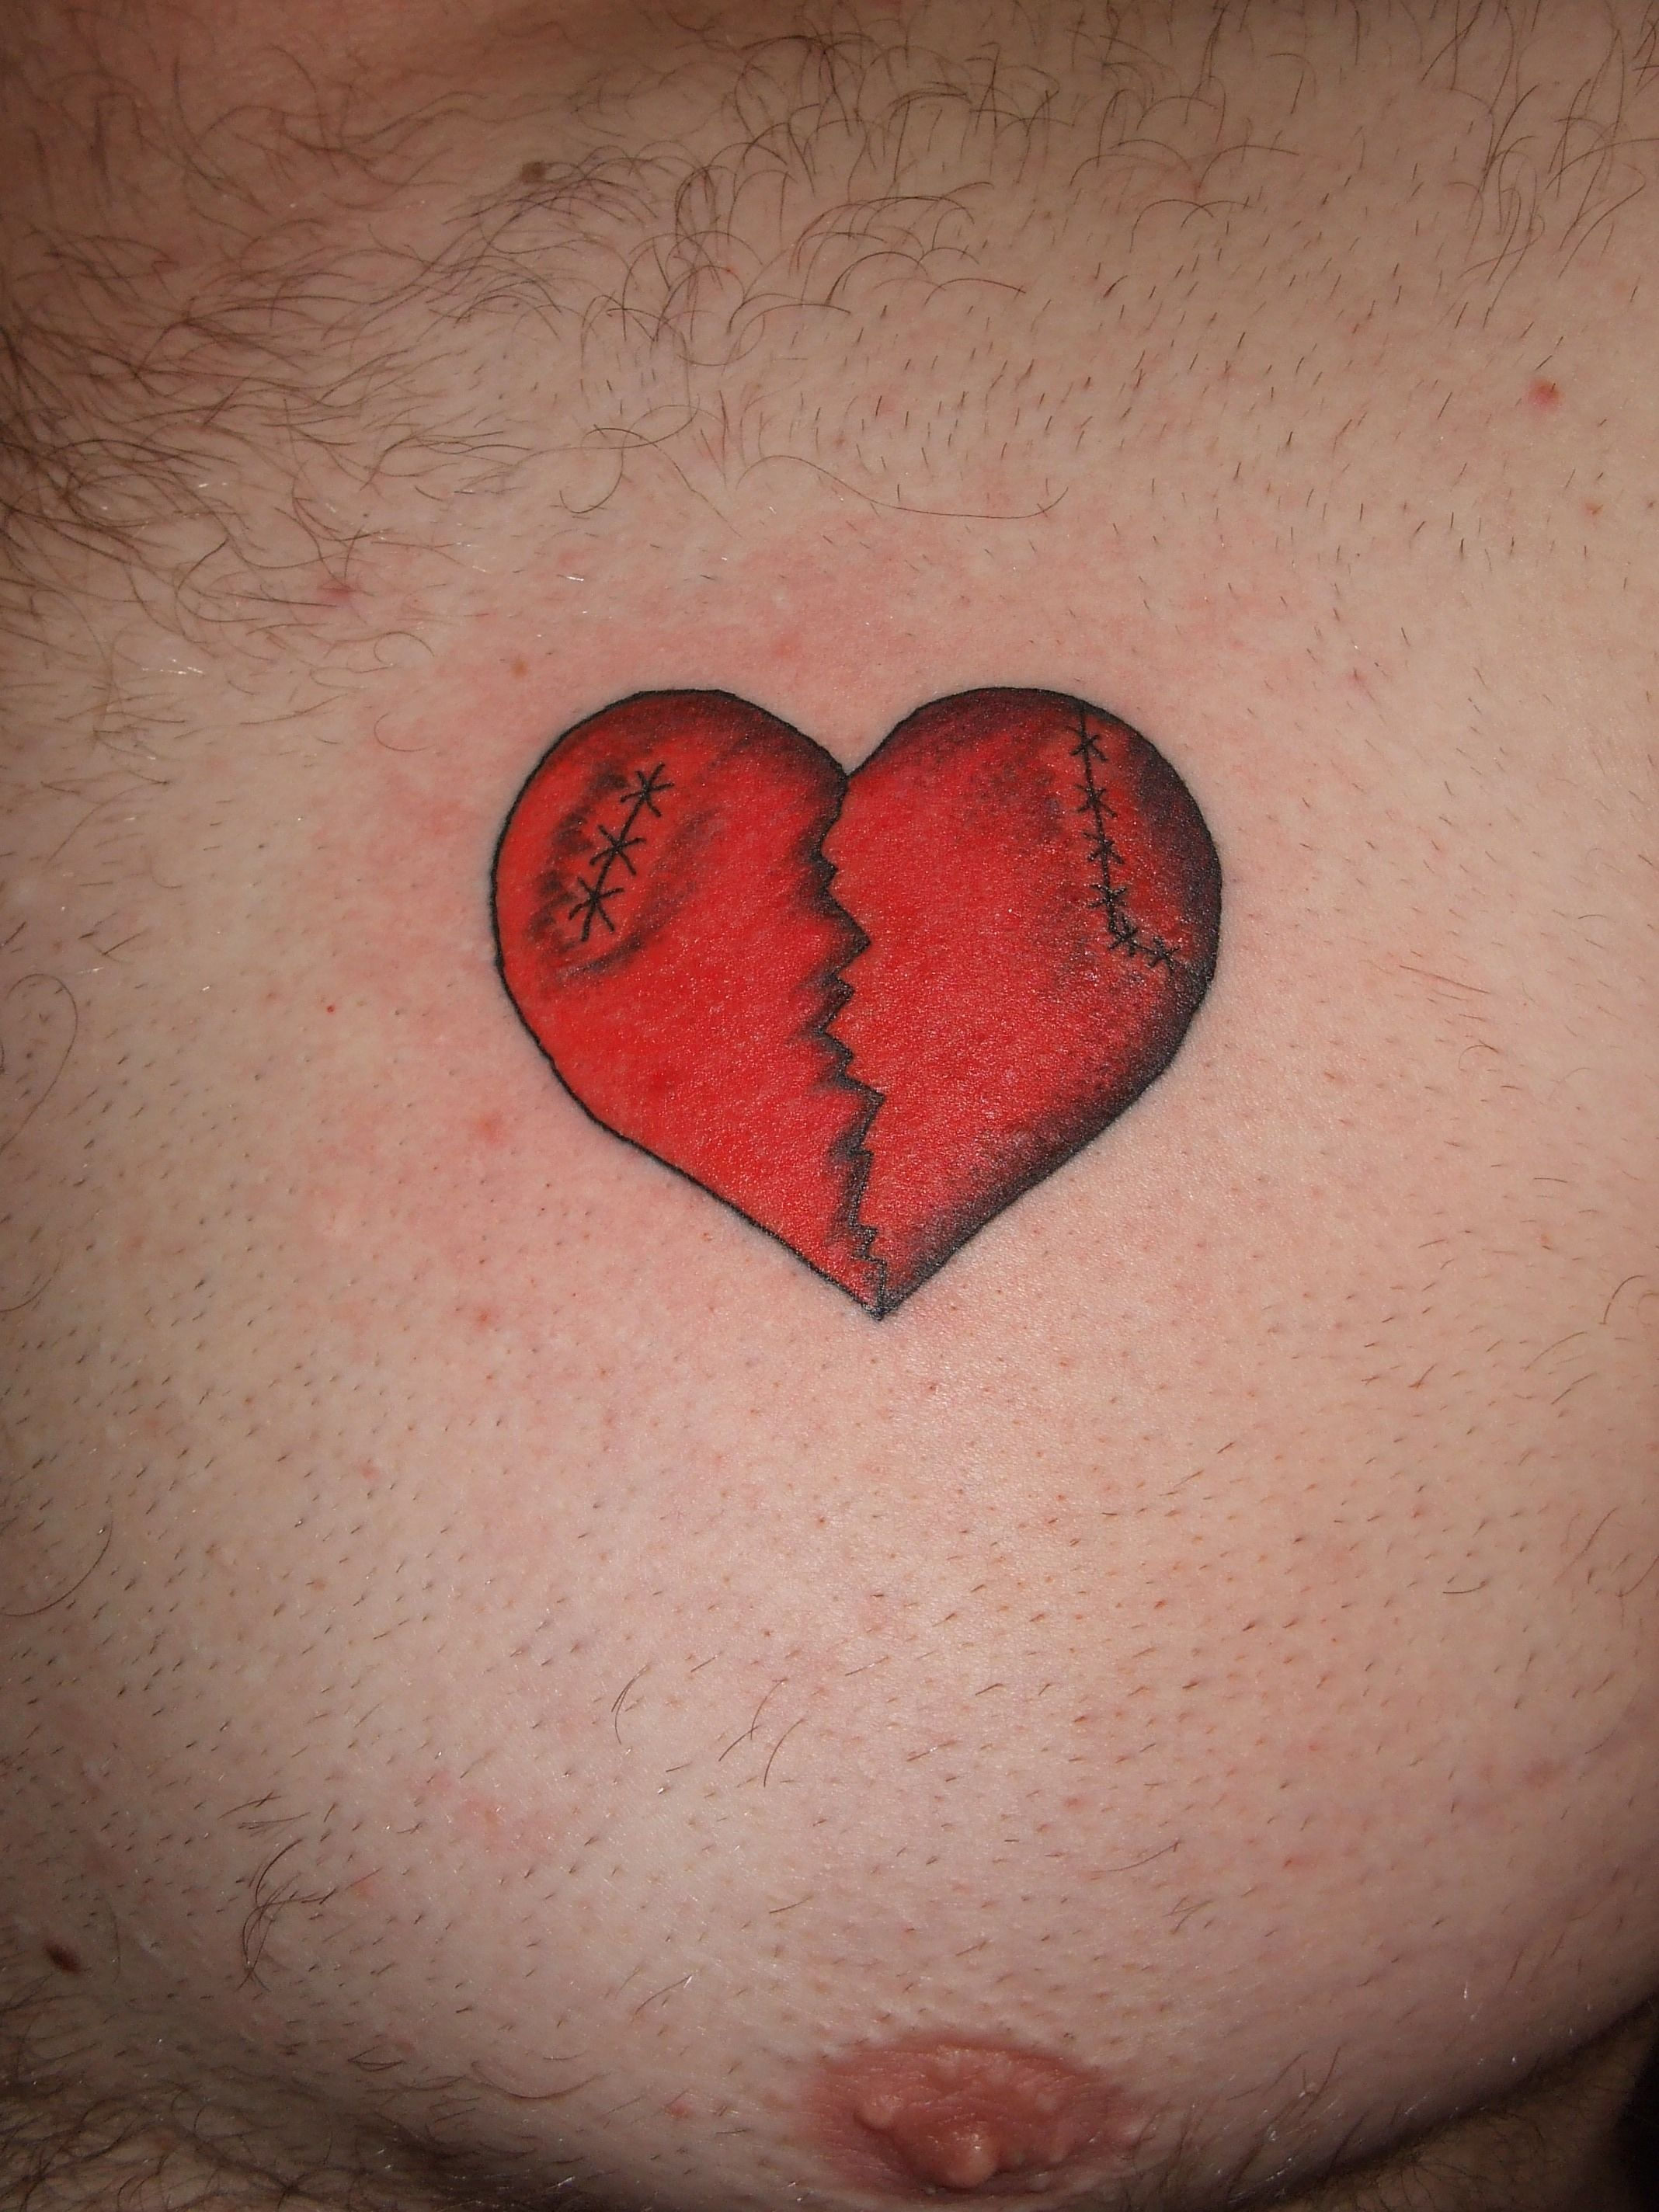 broken heart tattoo designs image and save image as click